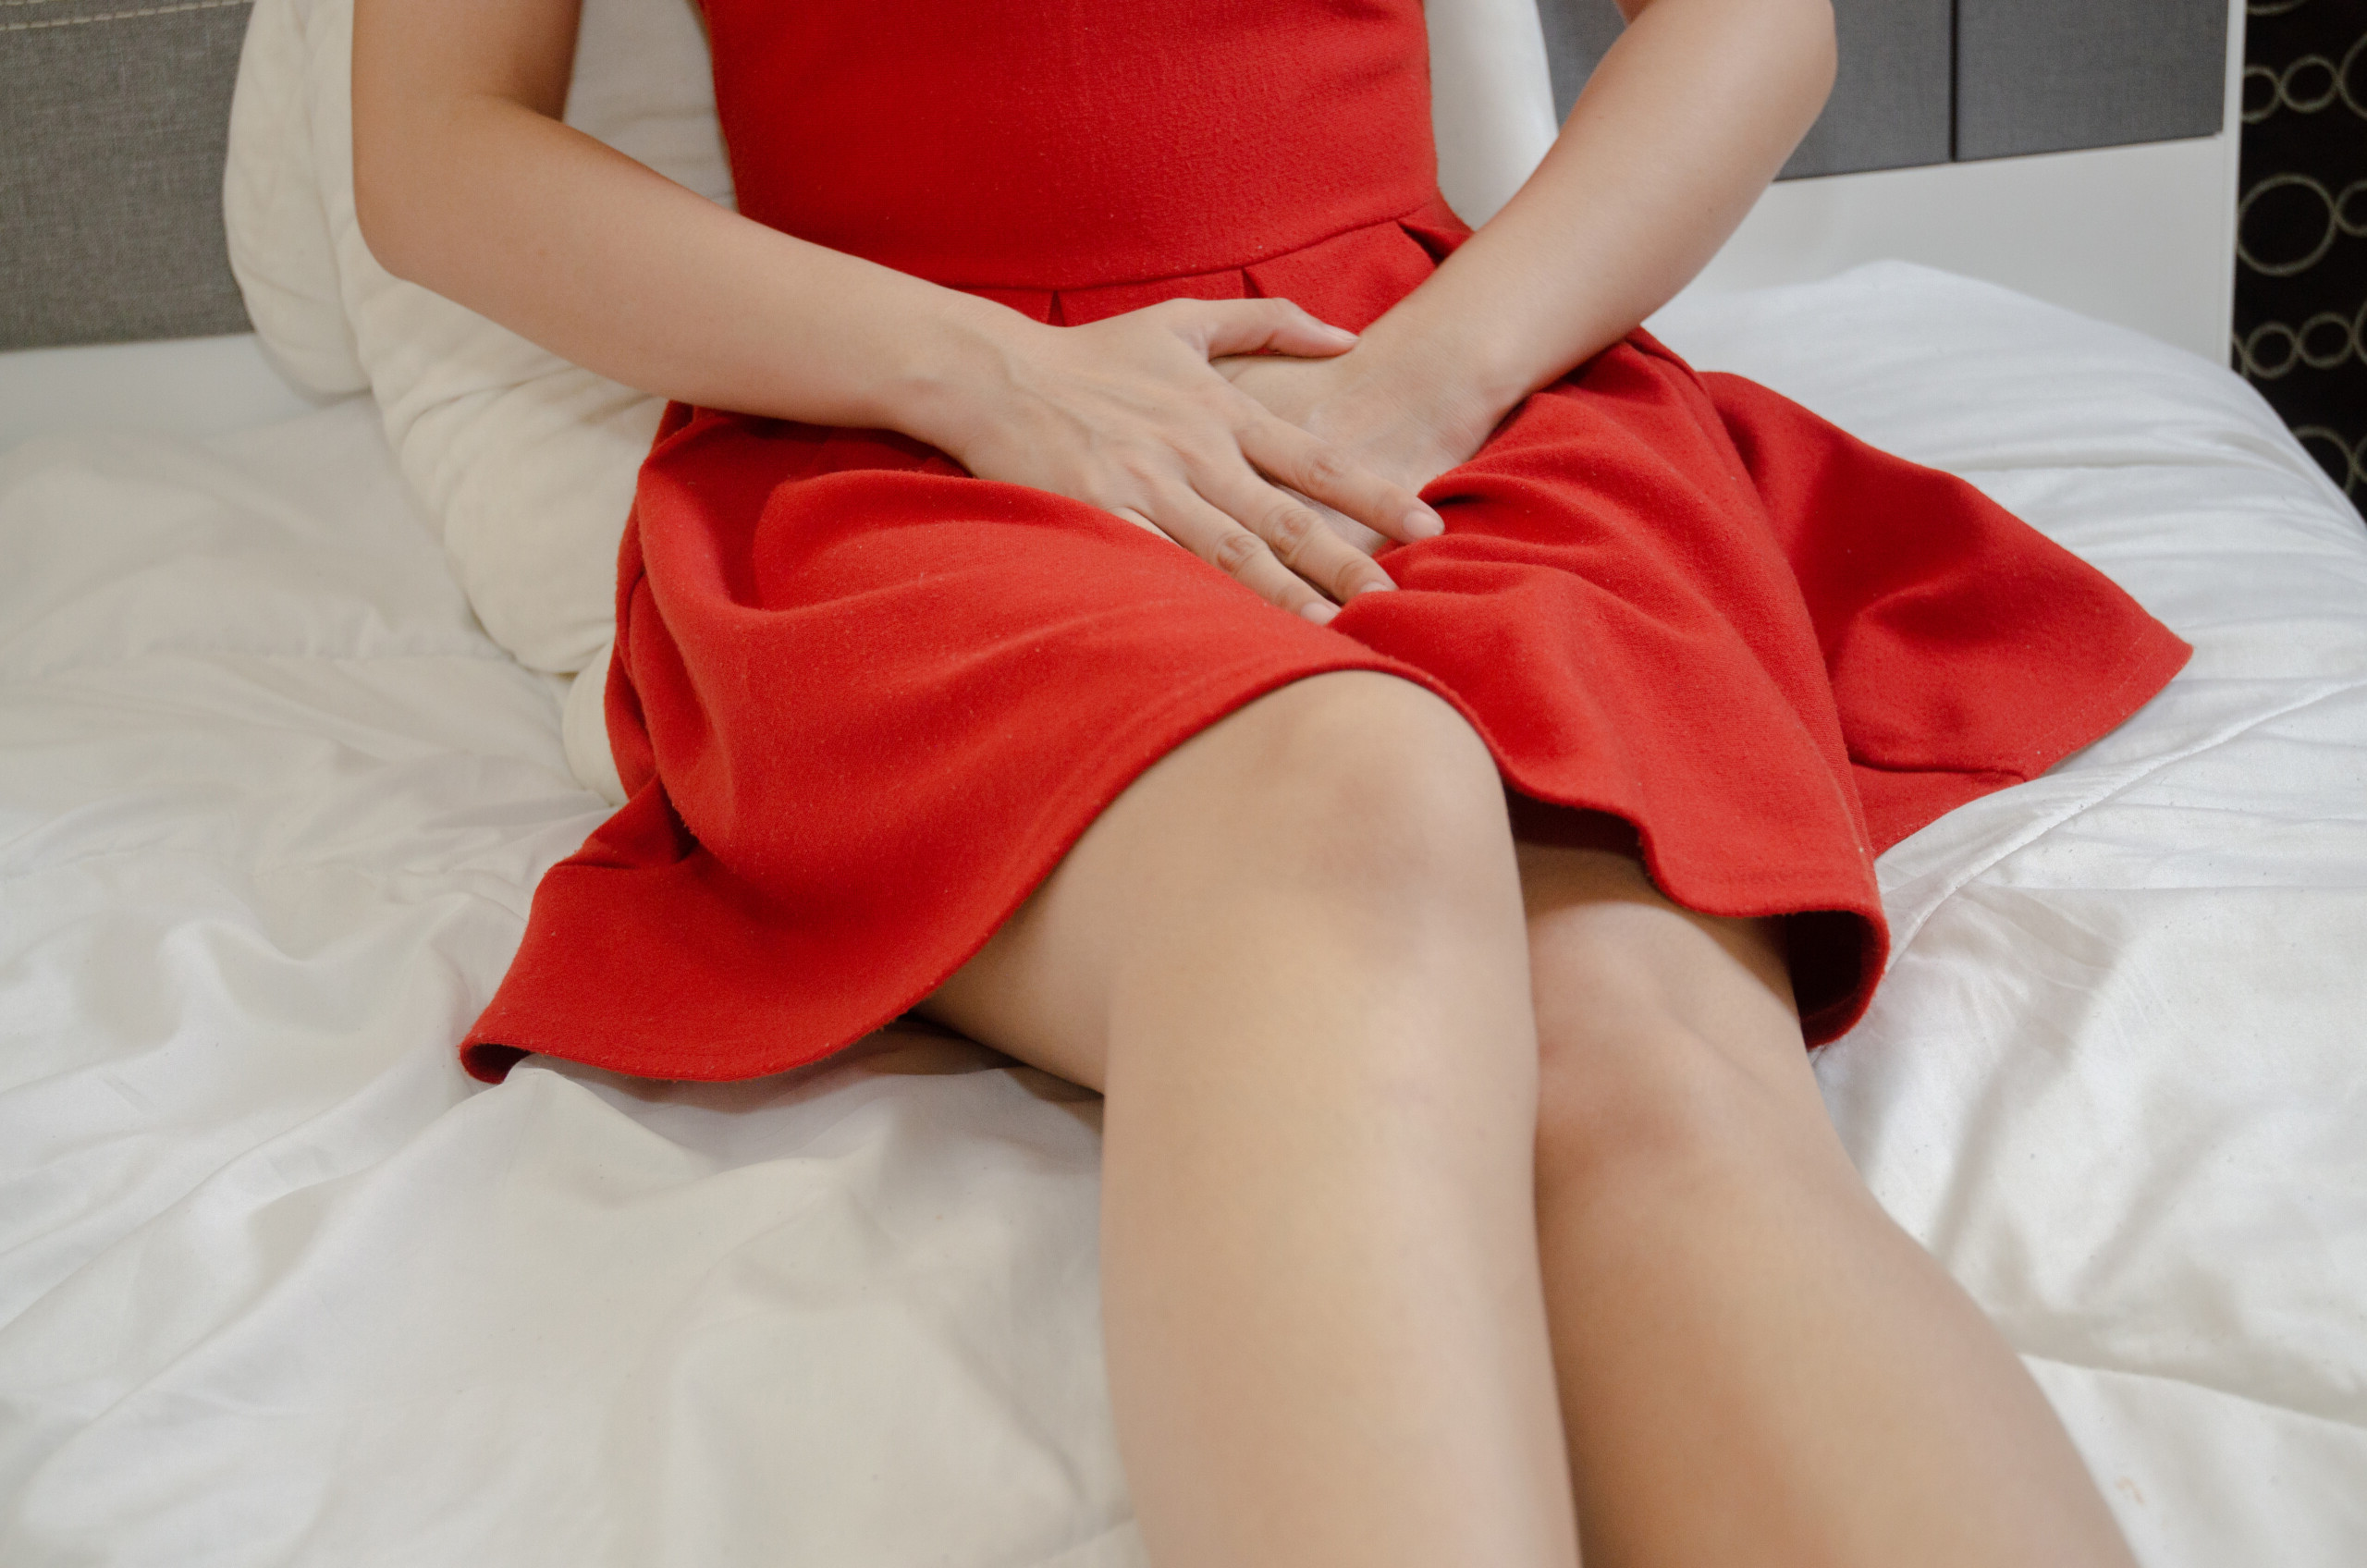 How Long Can You Have a UTI Before Symptoms Start?